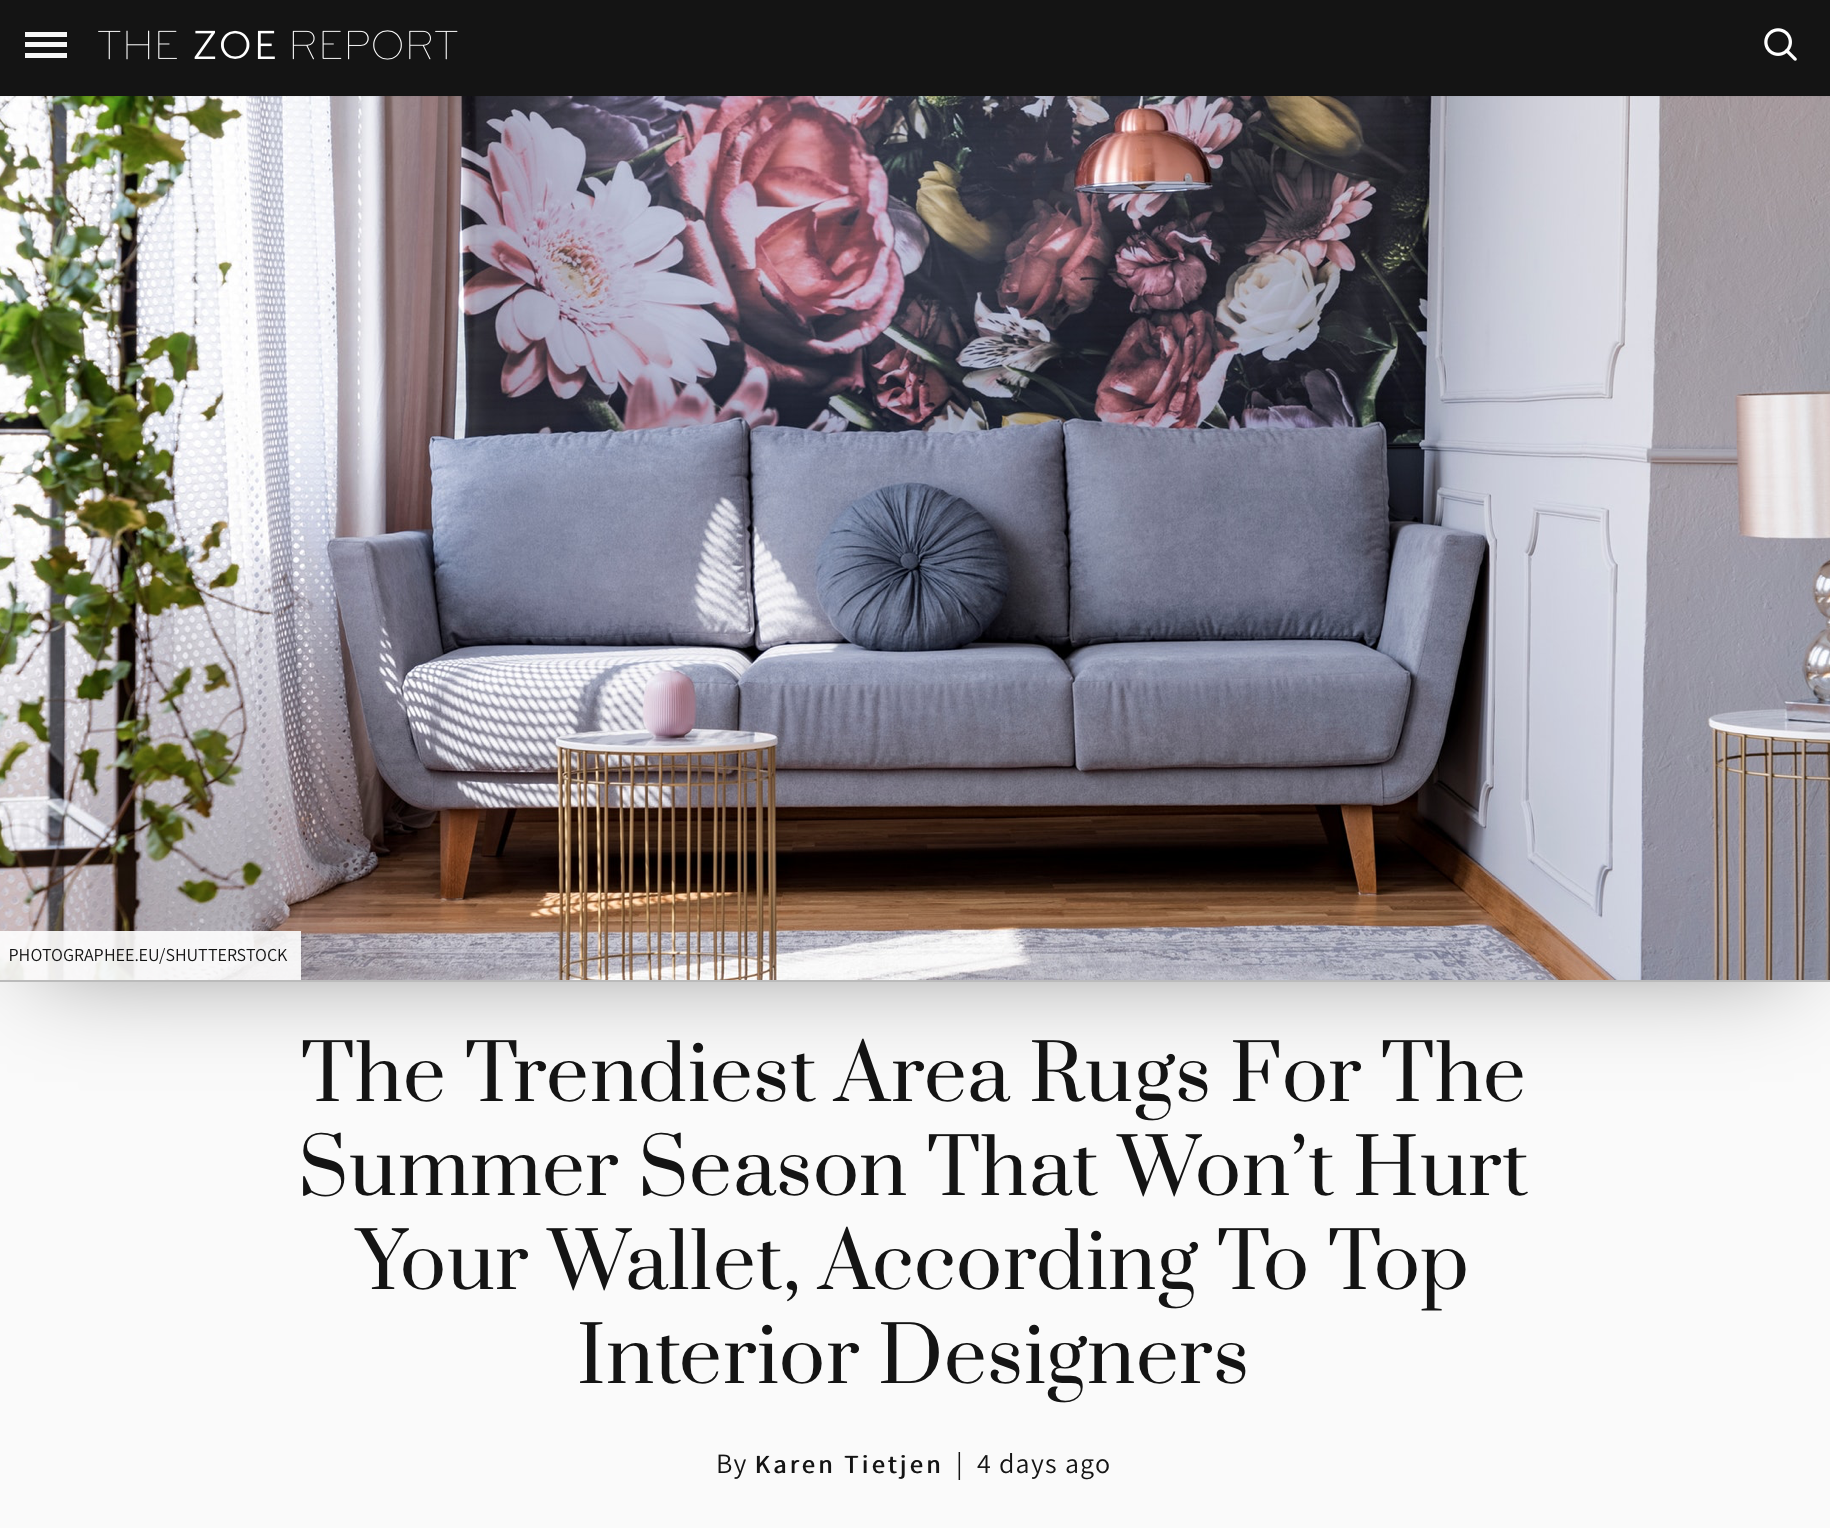 "Throw rugs ground a space and delineate areas,"" explains Lori Dennis, owner of Lori Dennis, Inc. in Los Angeles. ""This is especially important in open place rooms where there are no walls separating spaces."""